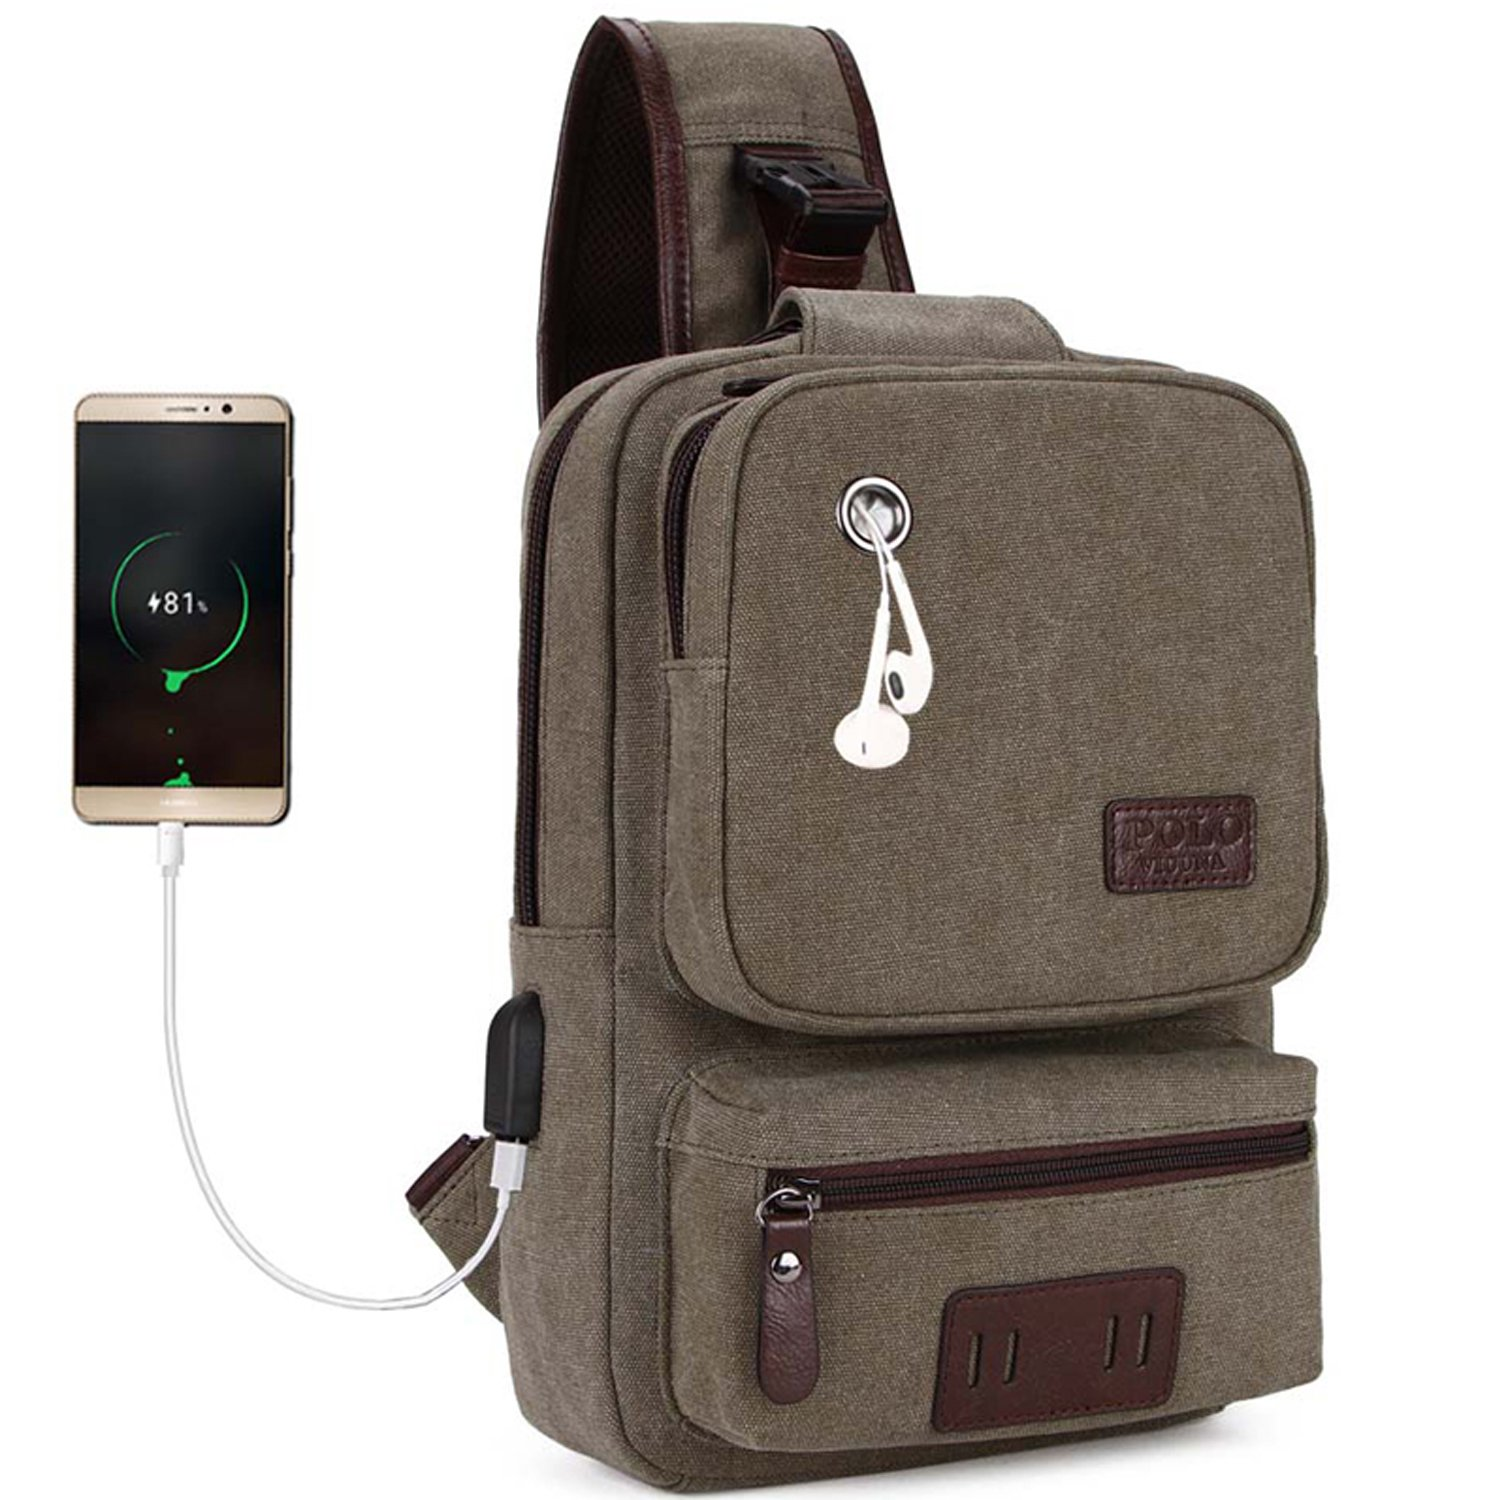 VICUNA POLO Canvas Sling Bag USB Charge Sport Travel Crossbody Backpack For Men(army green)